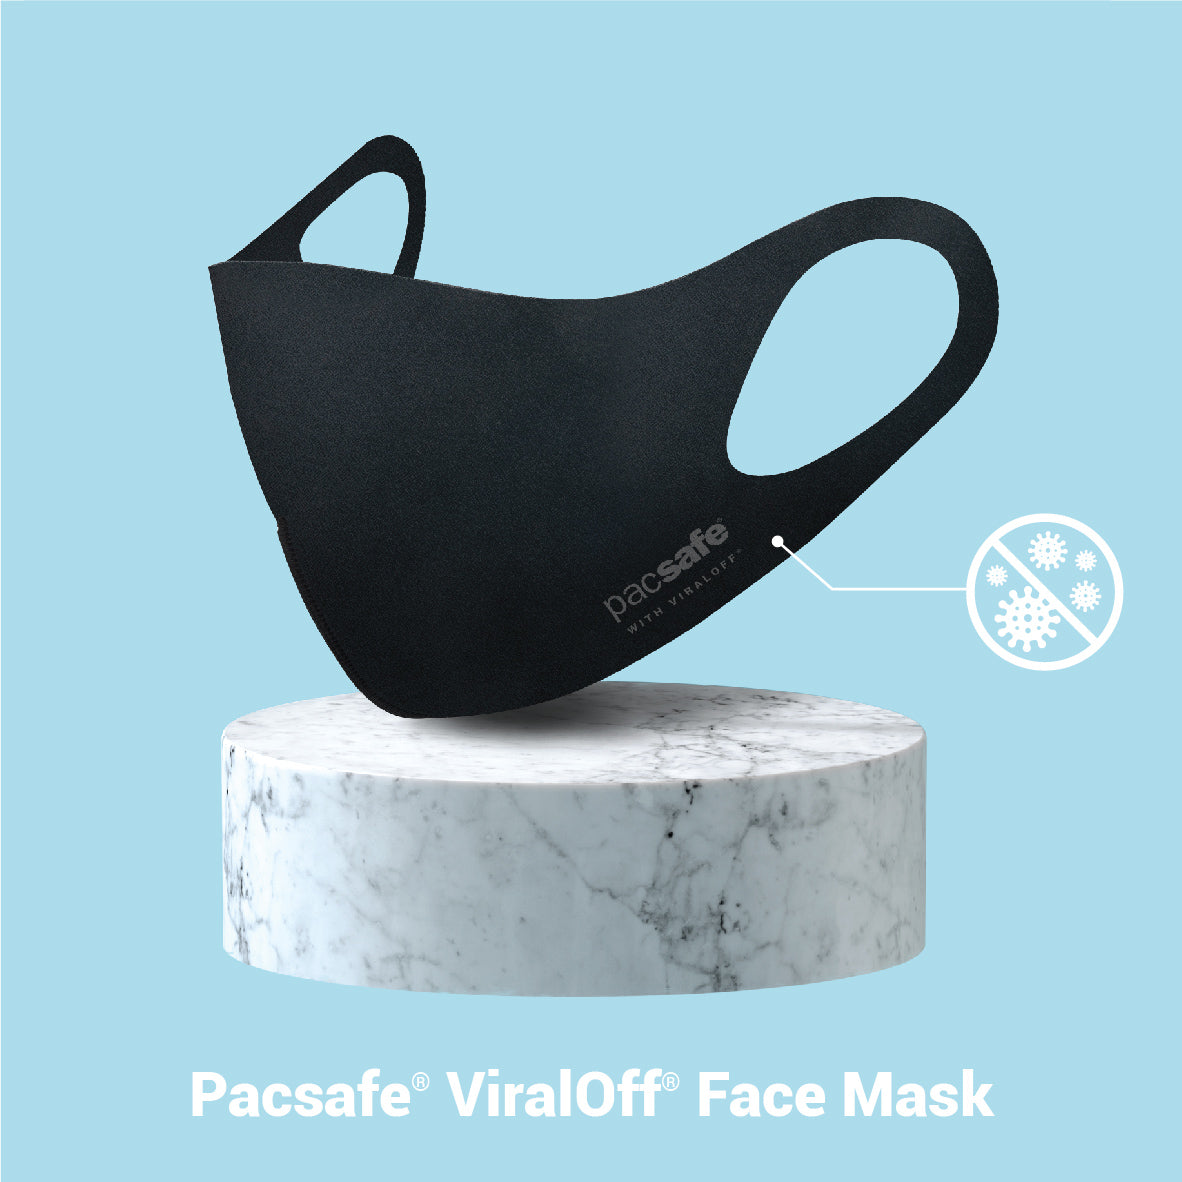 Pacsafe Viraloff Face Mask - Black image 2